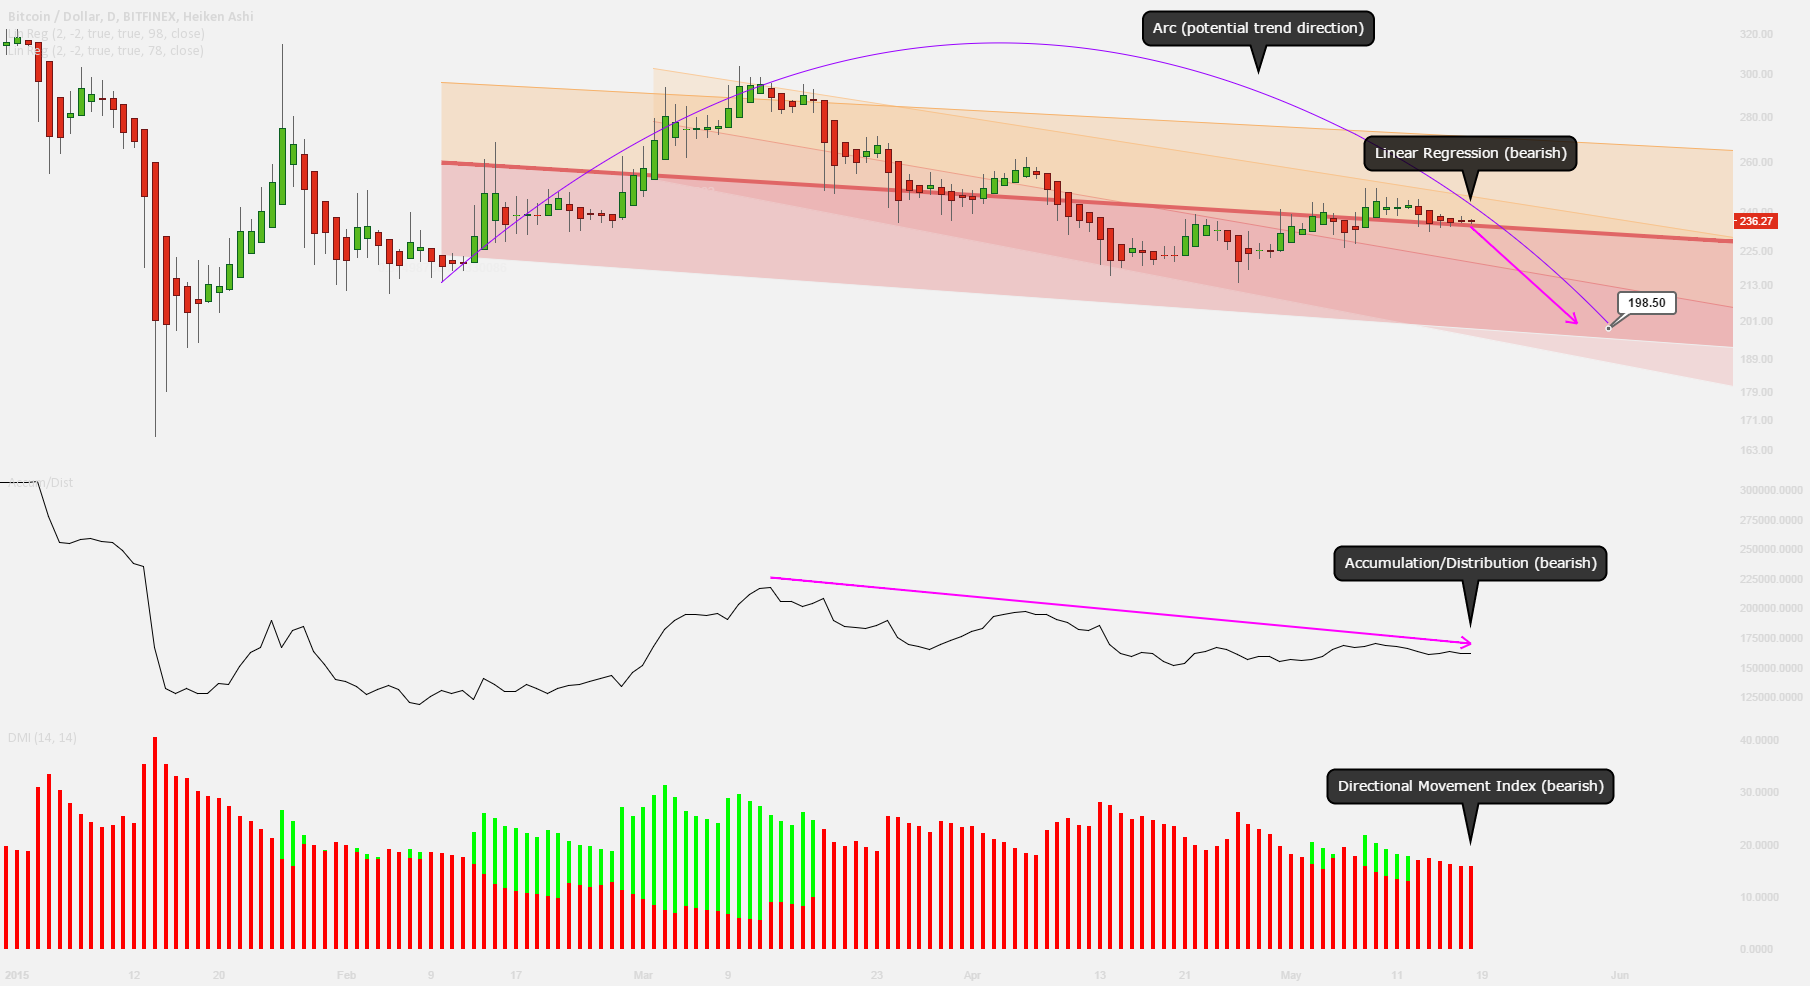 Bearish scenario if the price stays below 240 USD